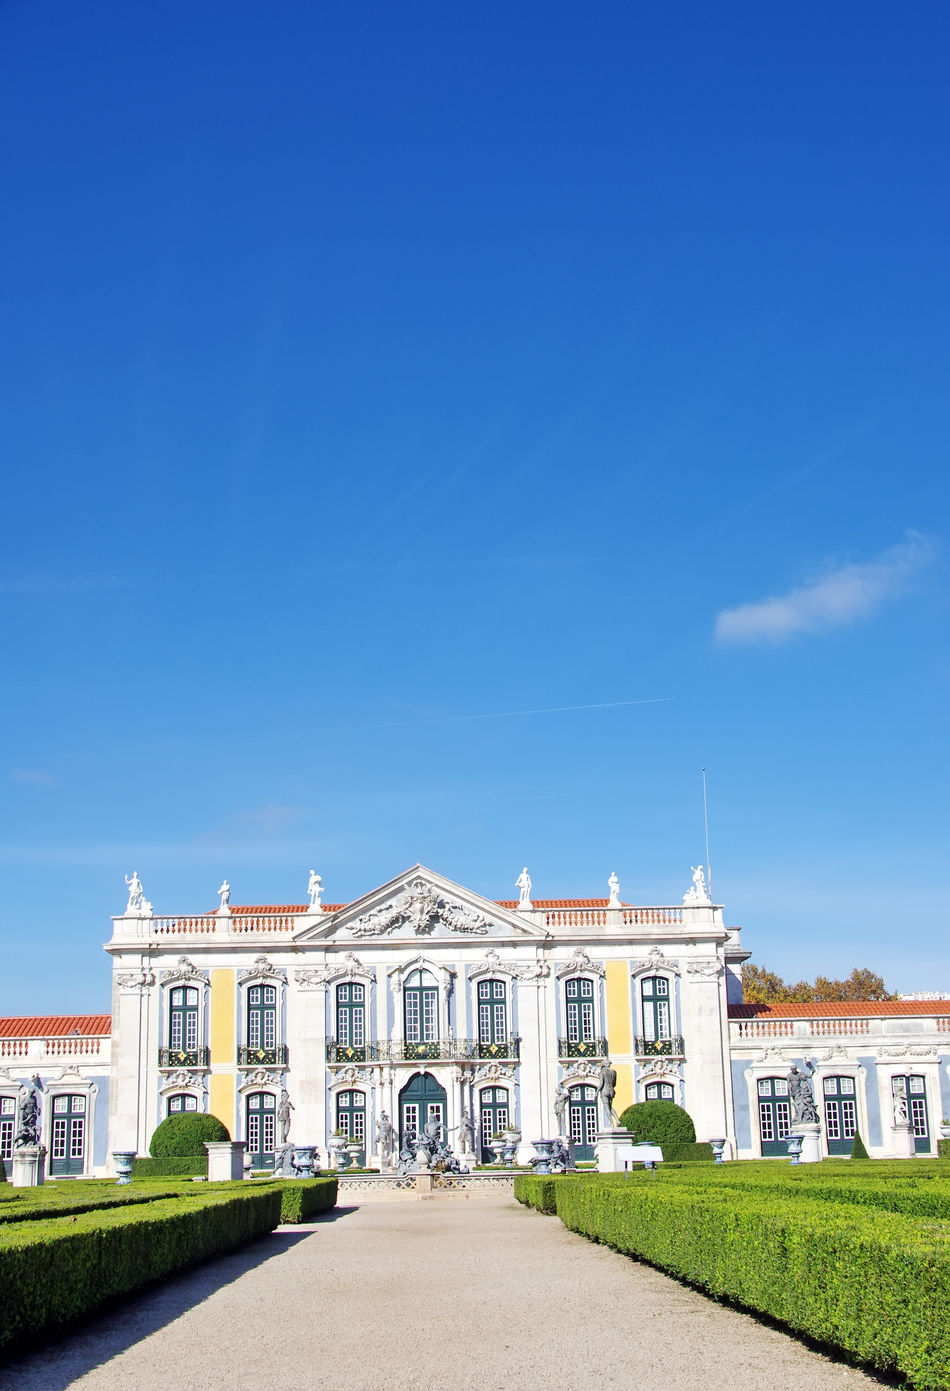 Queluz National Palace,Sintra, Lisbon district, Portugal Architecture Baroque Architecture Building Exterior Built Structure Capital Cities  Culture Exterior Façade Famous Place Historic Human Settlement International Landmark Outdoors Palacio Nacional De Queluz Queluz Residential District Tourism Travel Travel Destinations